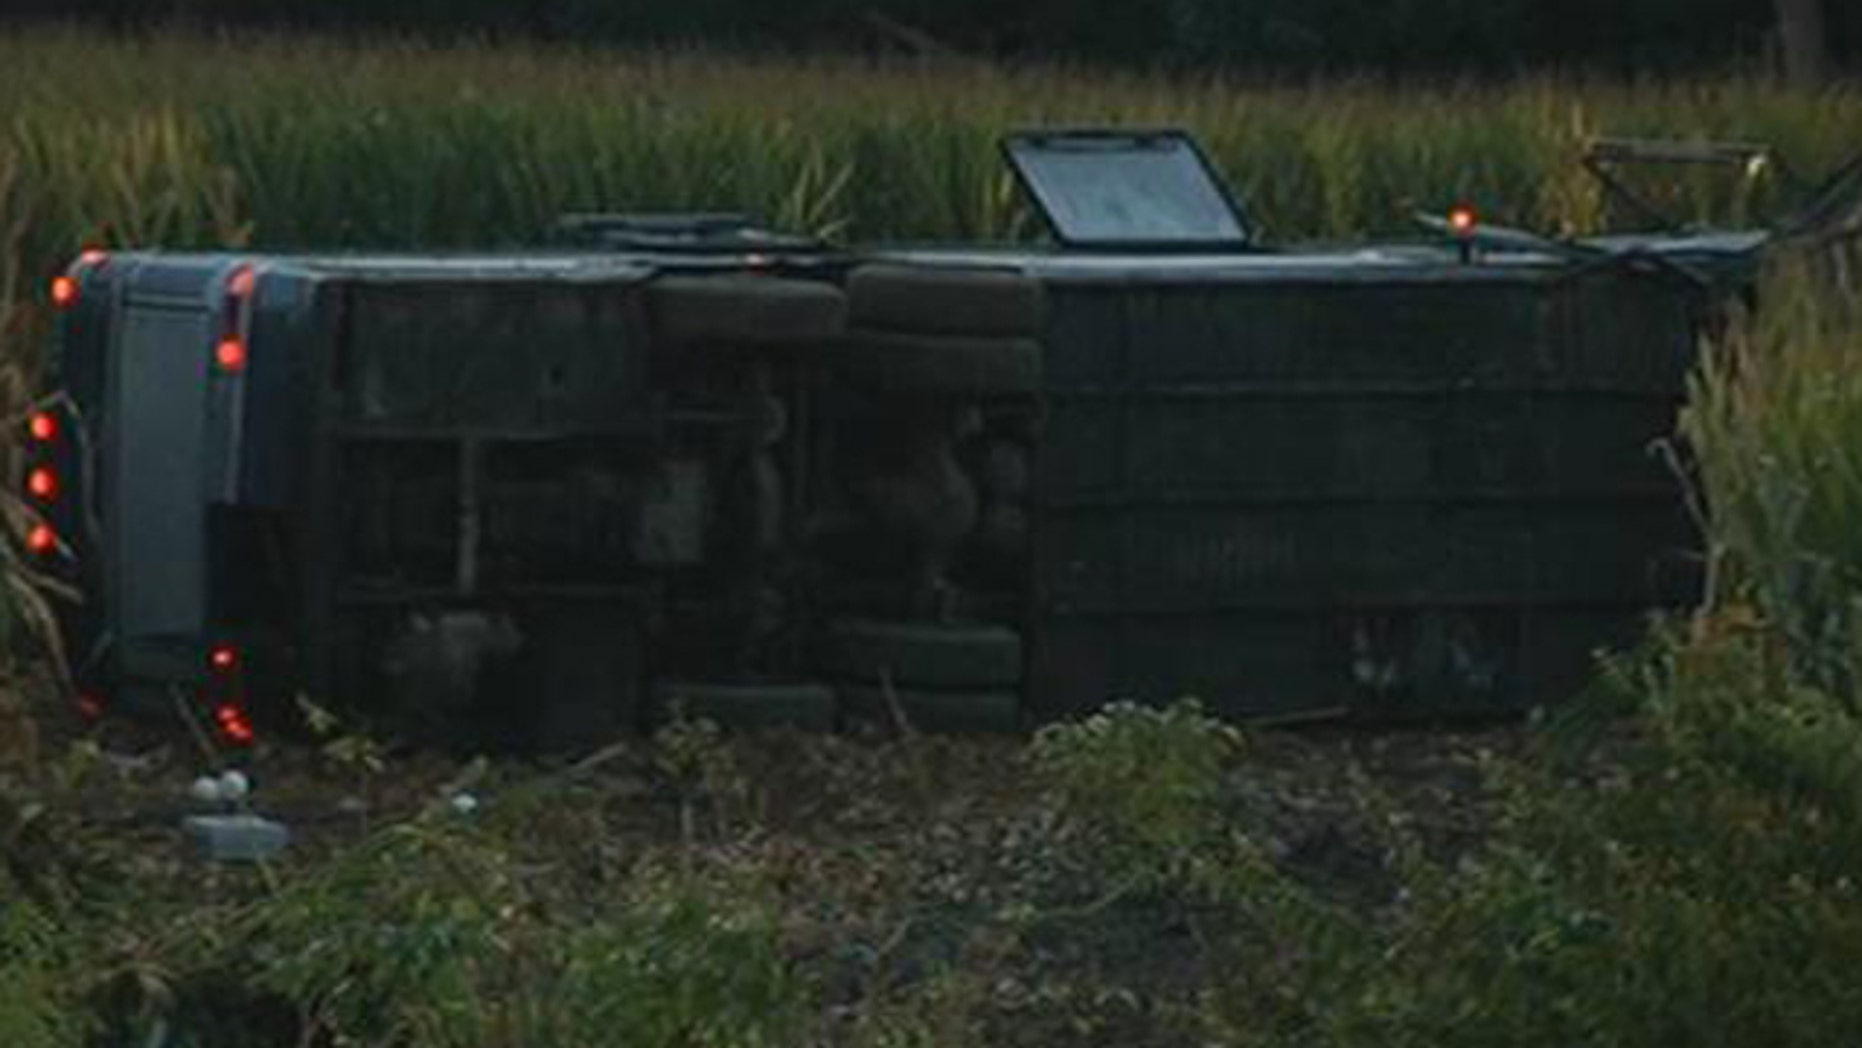 Sept. 14, 2013: A Greyhound bus has overturned on an interstate in southwest Ohio and 34 people have been hurt.